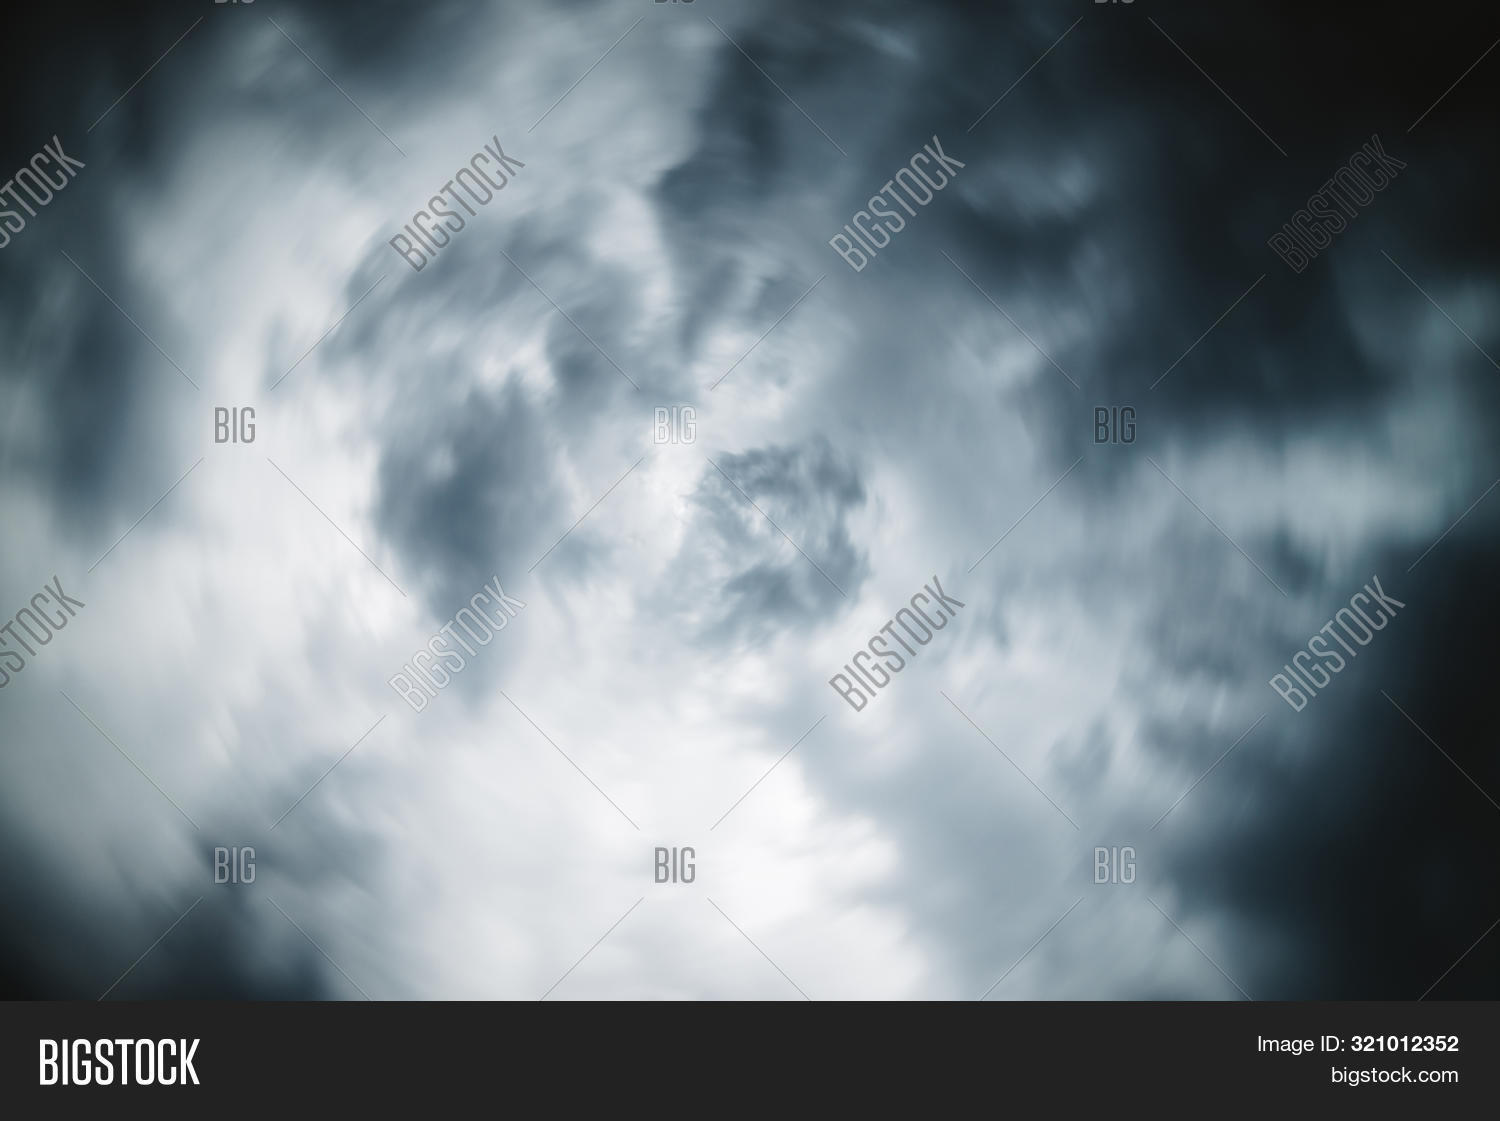 atmosphere,backdrop,background,bad,beautiful,cirrus,climate,cloudiness,clouds,cloudscape,cloudy,cumulonimbus,danger,dark,darkness,disaster,dramatic,electric,environment,gray,heaven,heavy,hurricane,impressive,landscape,layered,majestic,meteorology,moody,natural,nature,ominous,overcast,overcloud,pattern,scenery,scenic,sky,snorter,storm,stormy,stratus,texture,thunder,thunderclouds,thunderstorm,weather,wind,windstorm